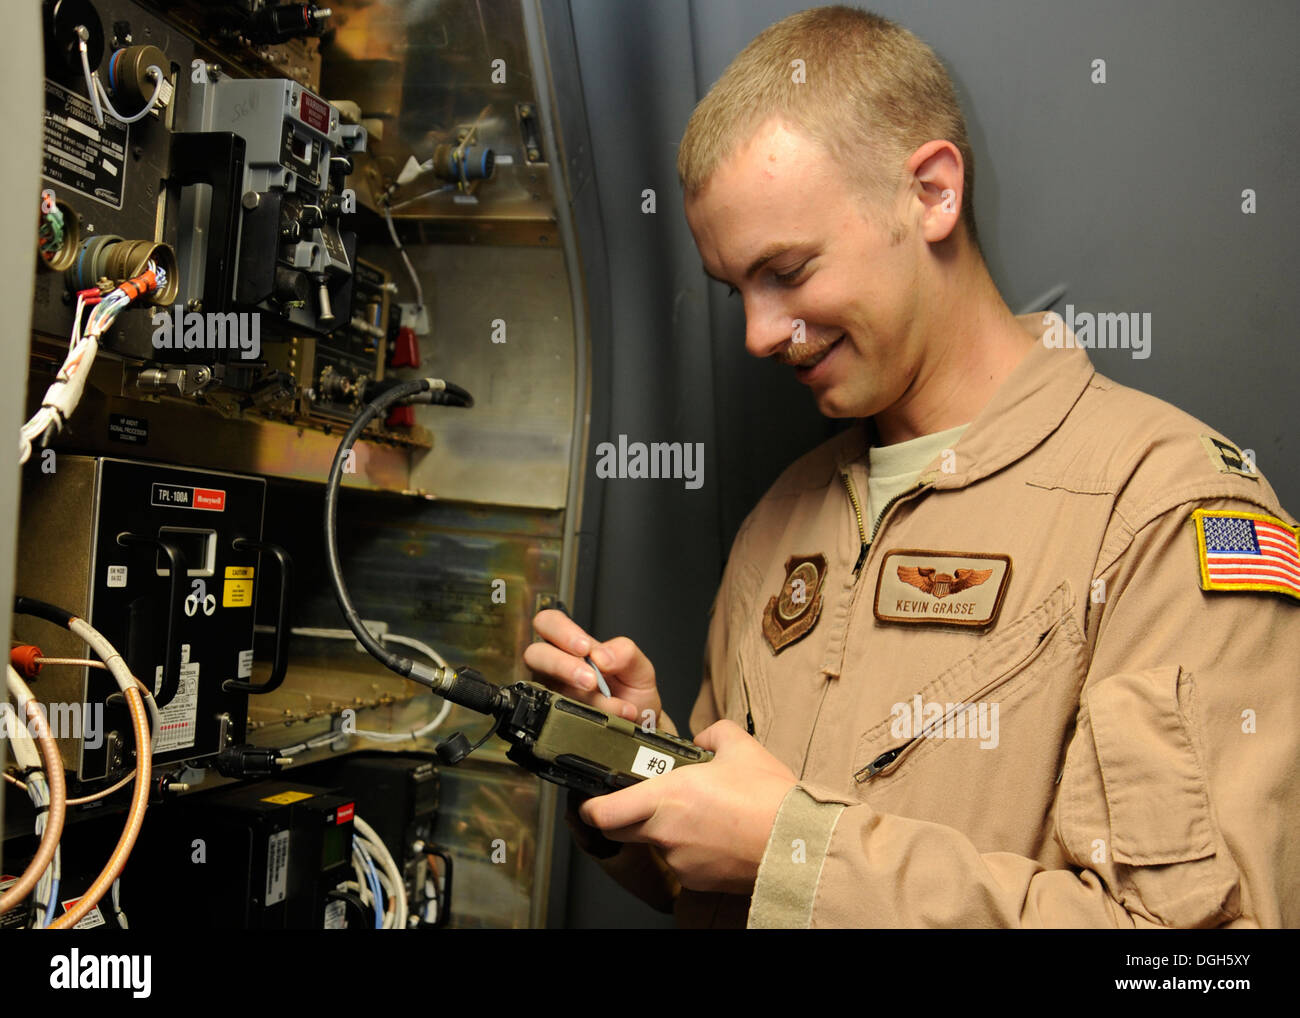 Capt. Kevin Grasse loads data into avionics equipment prior to a C-17 Globemaster III mission at the 379th Air Expeditionary Wing in Southwest Asia, Oct. 13, 2013. Capable of strategic delivery of troops and a broad range of cargo, the C-17 and its aircre - Stock Image